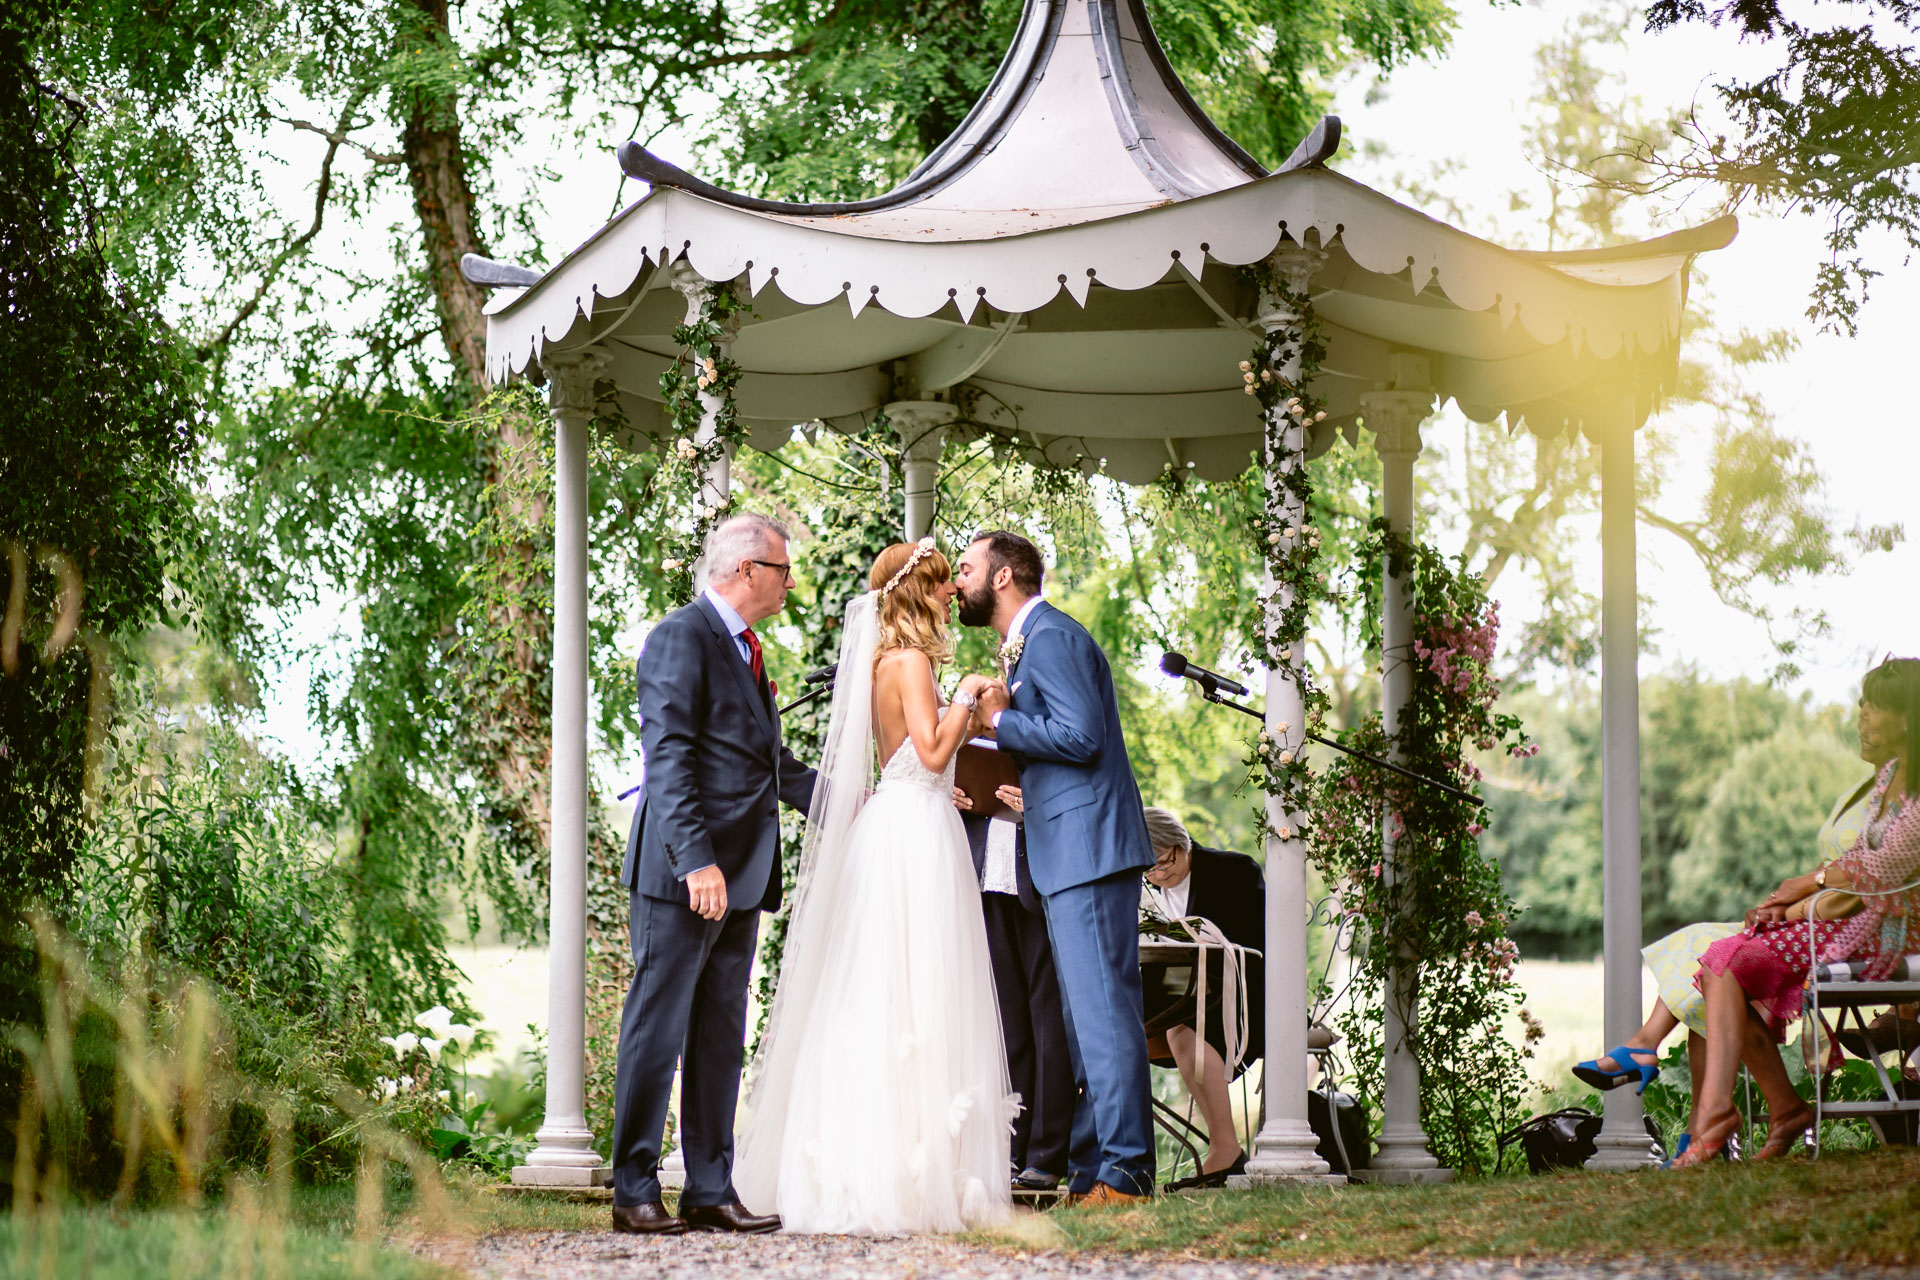 preston court boho wedding alexia and dan bride and groom exchanging the vows under canopy in the garden